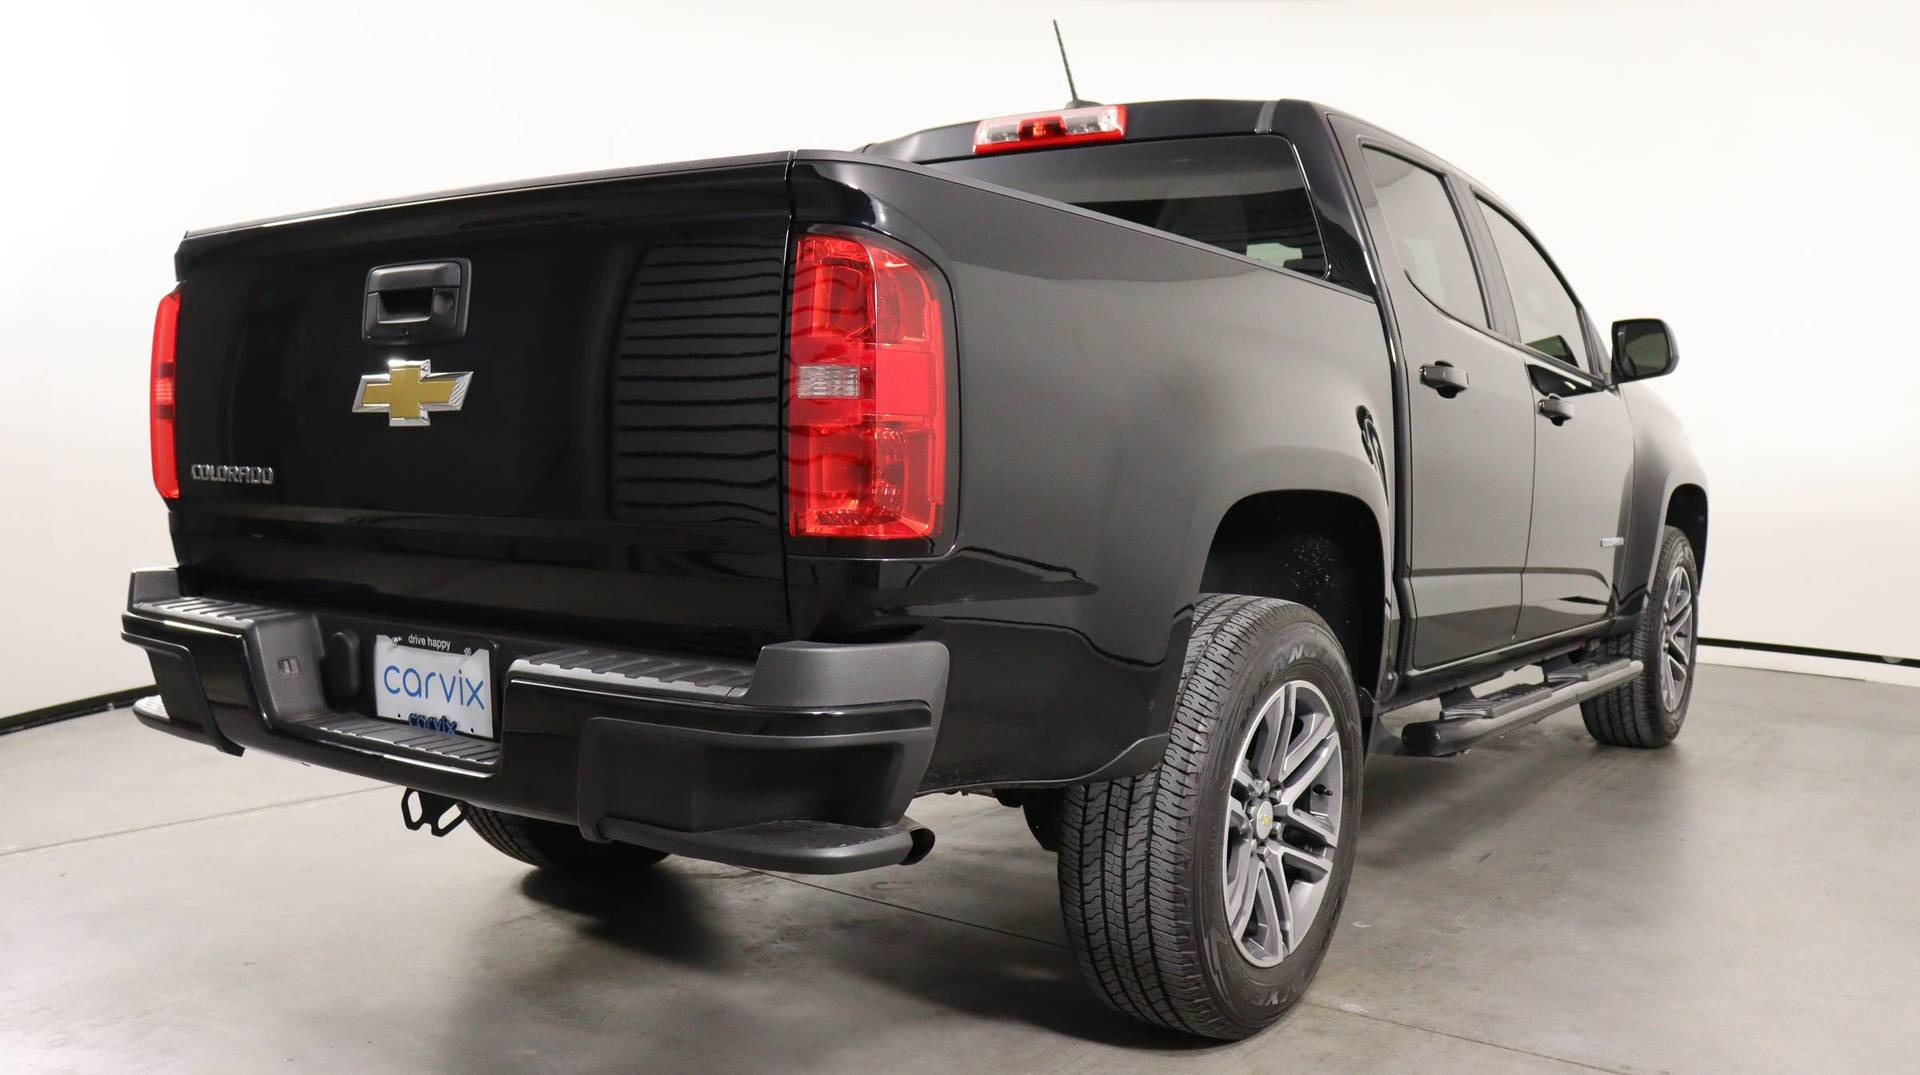 Carvix - Used vehicle - Truck CHEVROLET COLORADO 2019